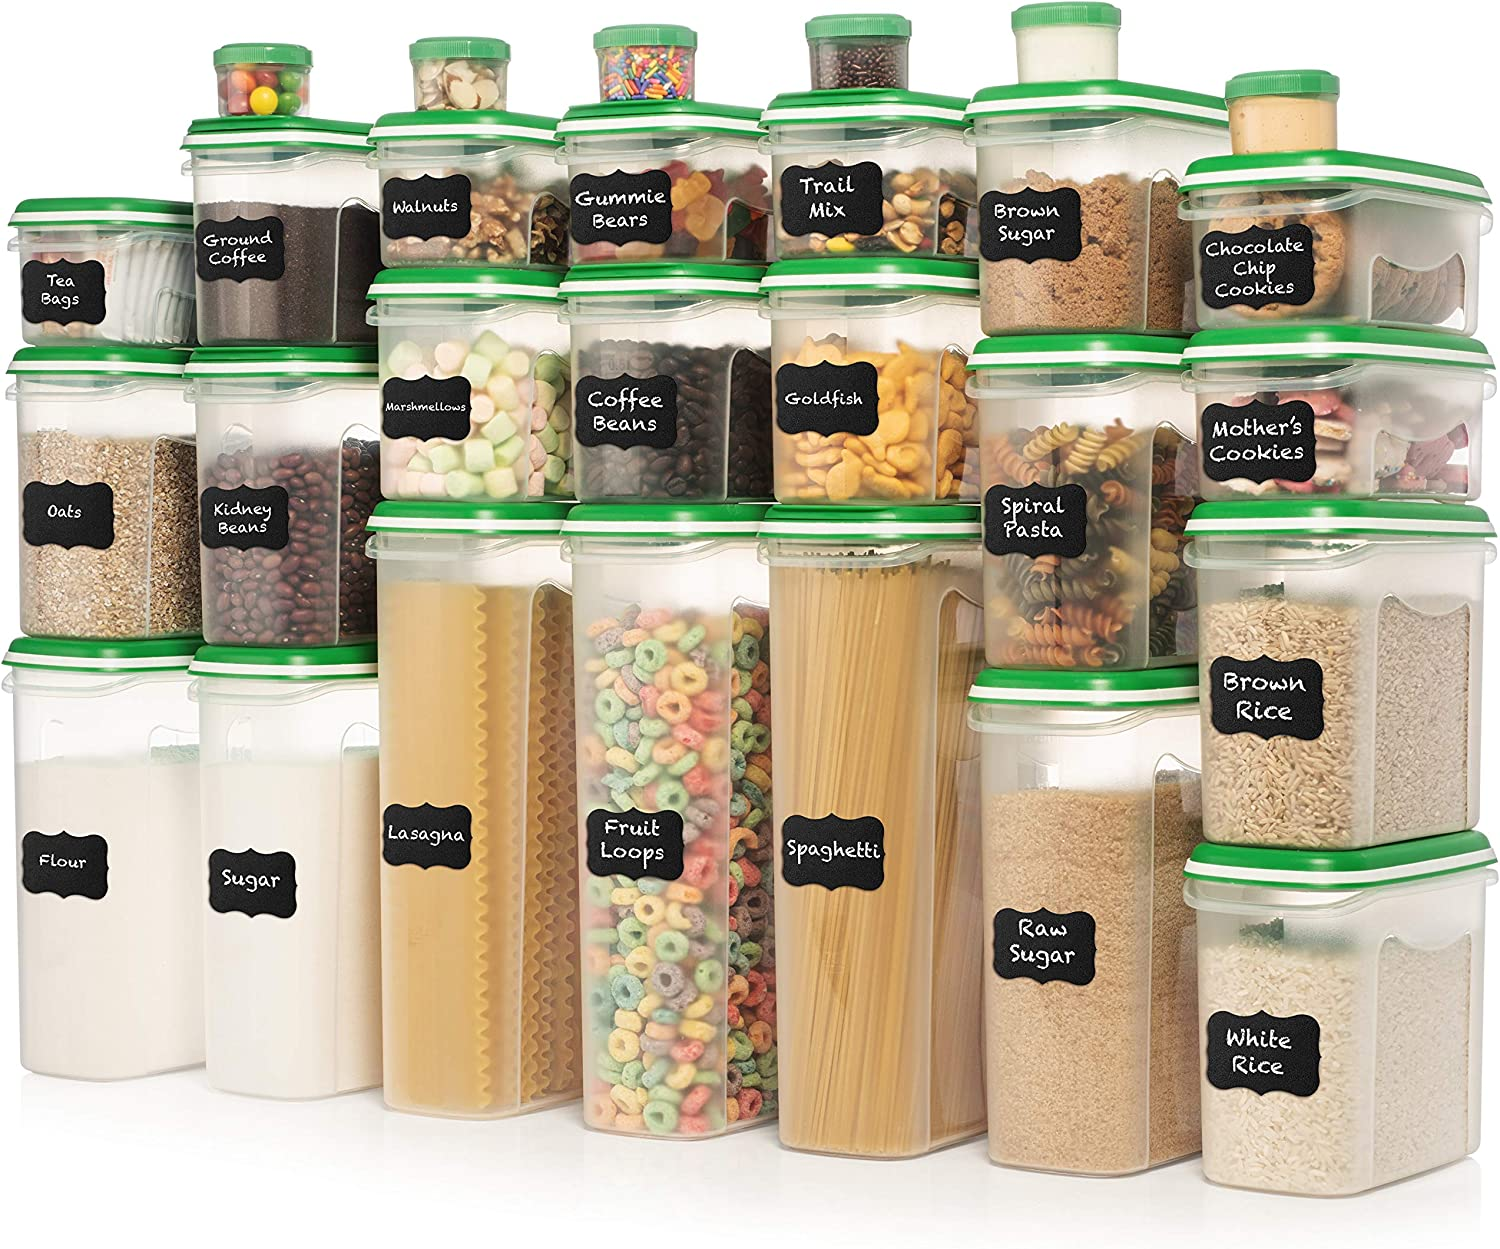 ULTIMATE LARGEST Set of 56 Pc Food Storage Containers (28 Container Set) Shazo Airtight Dry Food Space Saver with Two Type Interchangeable Lids, Labels + Marker - One Lid Fits All Reusable GREEN